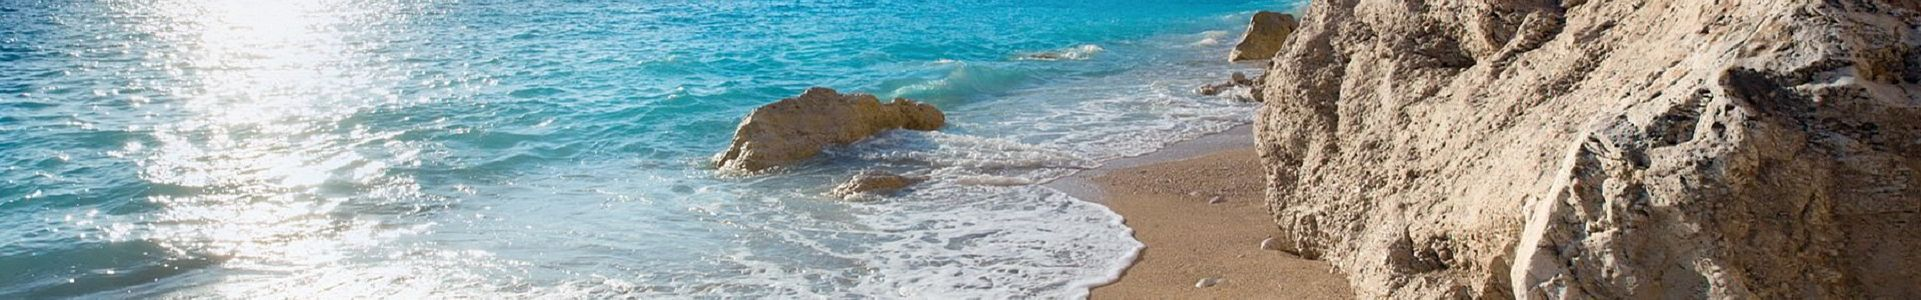 Lefkada Agape travel